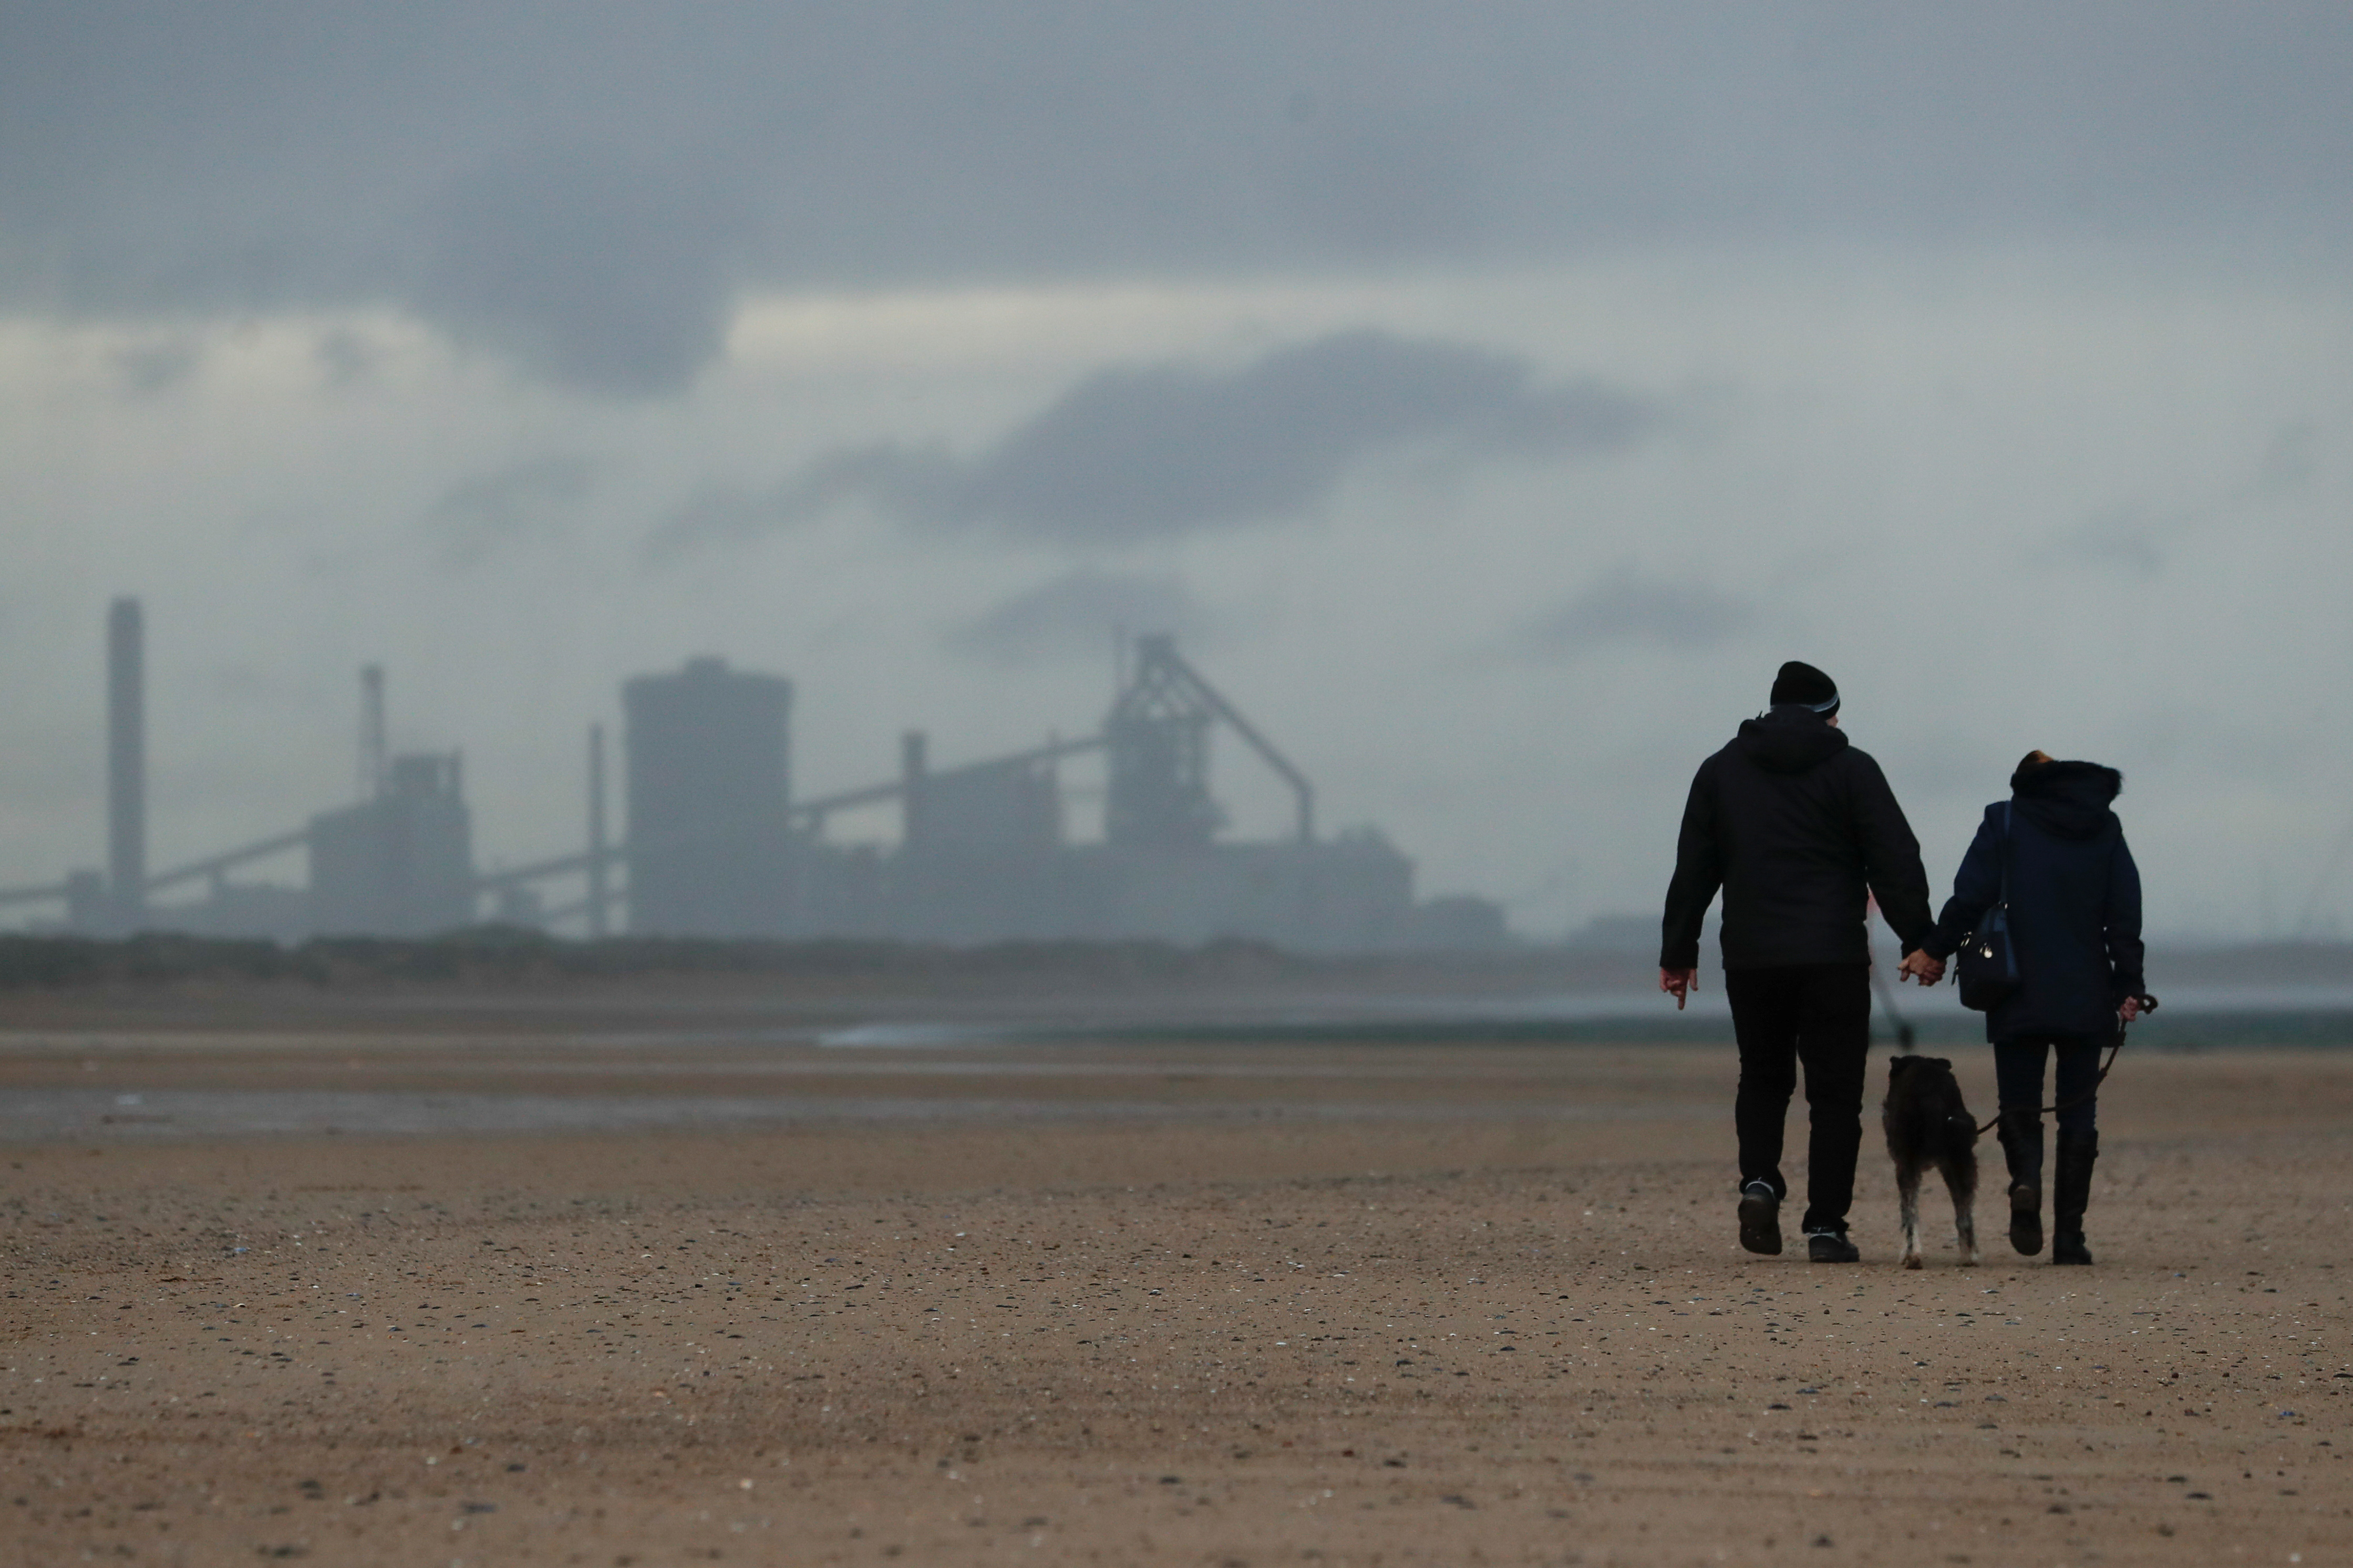 People walk on the beach as industries are seen in the background in Teesside, Britain November 18, 2020. REUTERS/Lee Smith